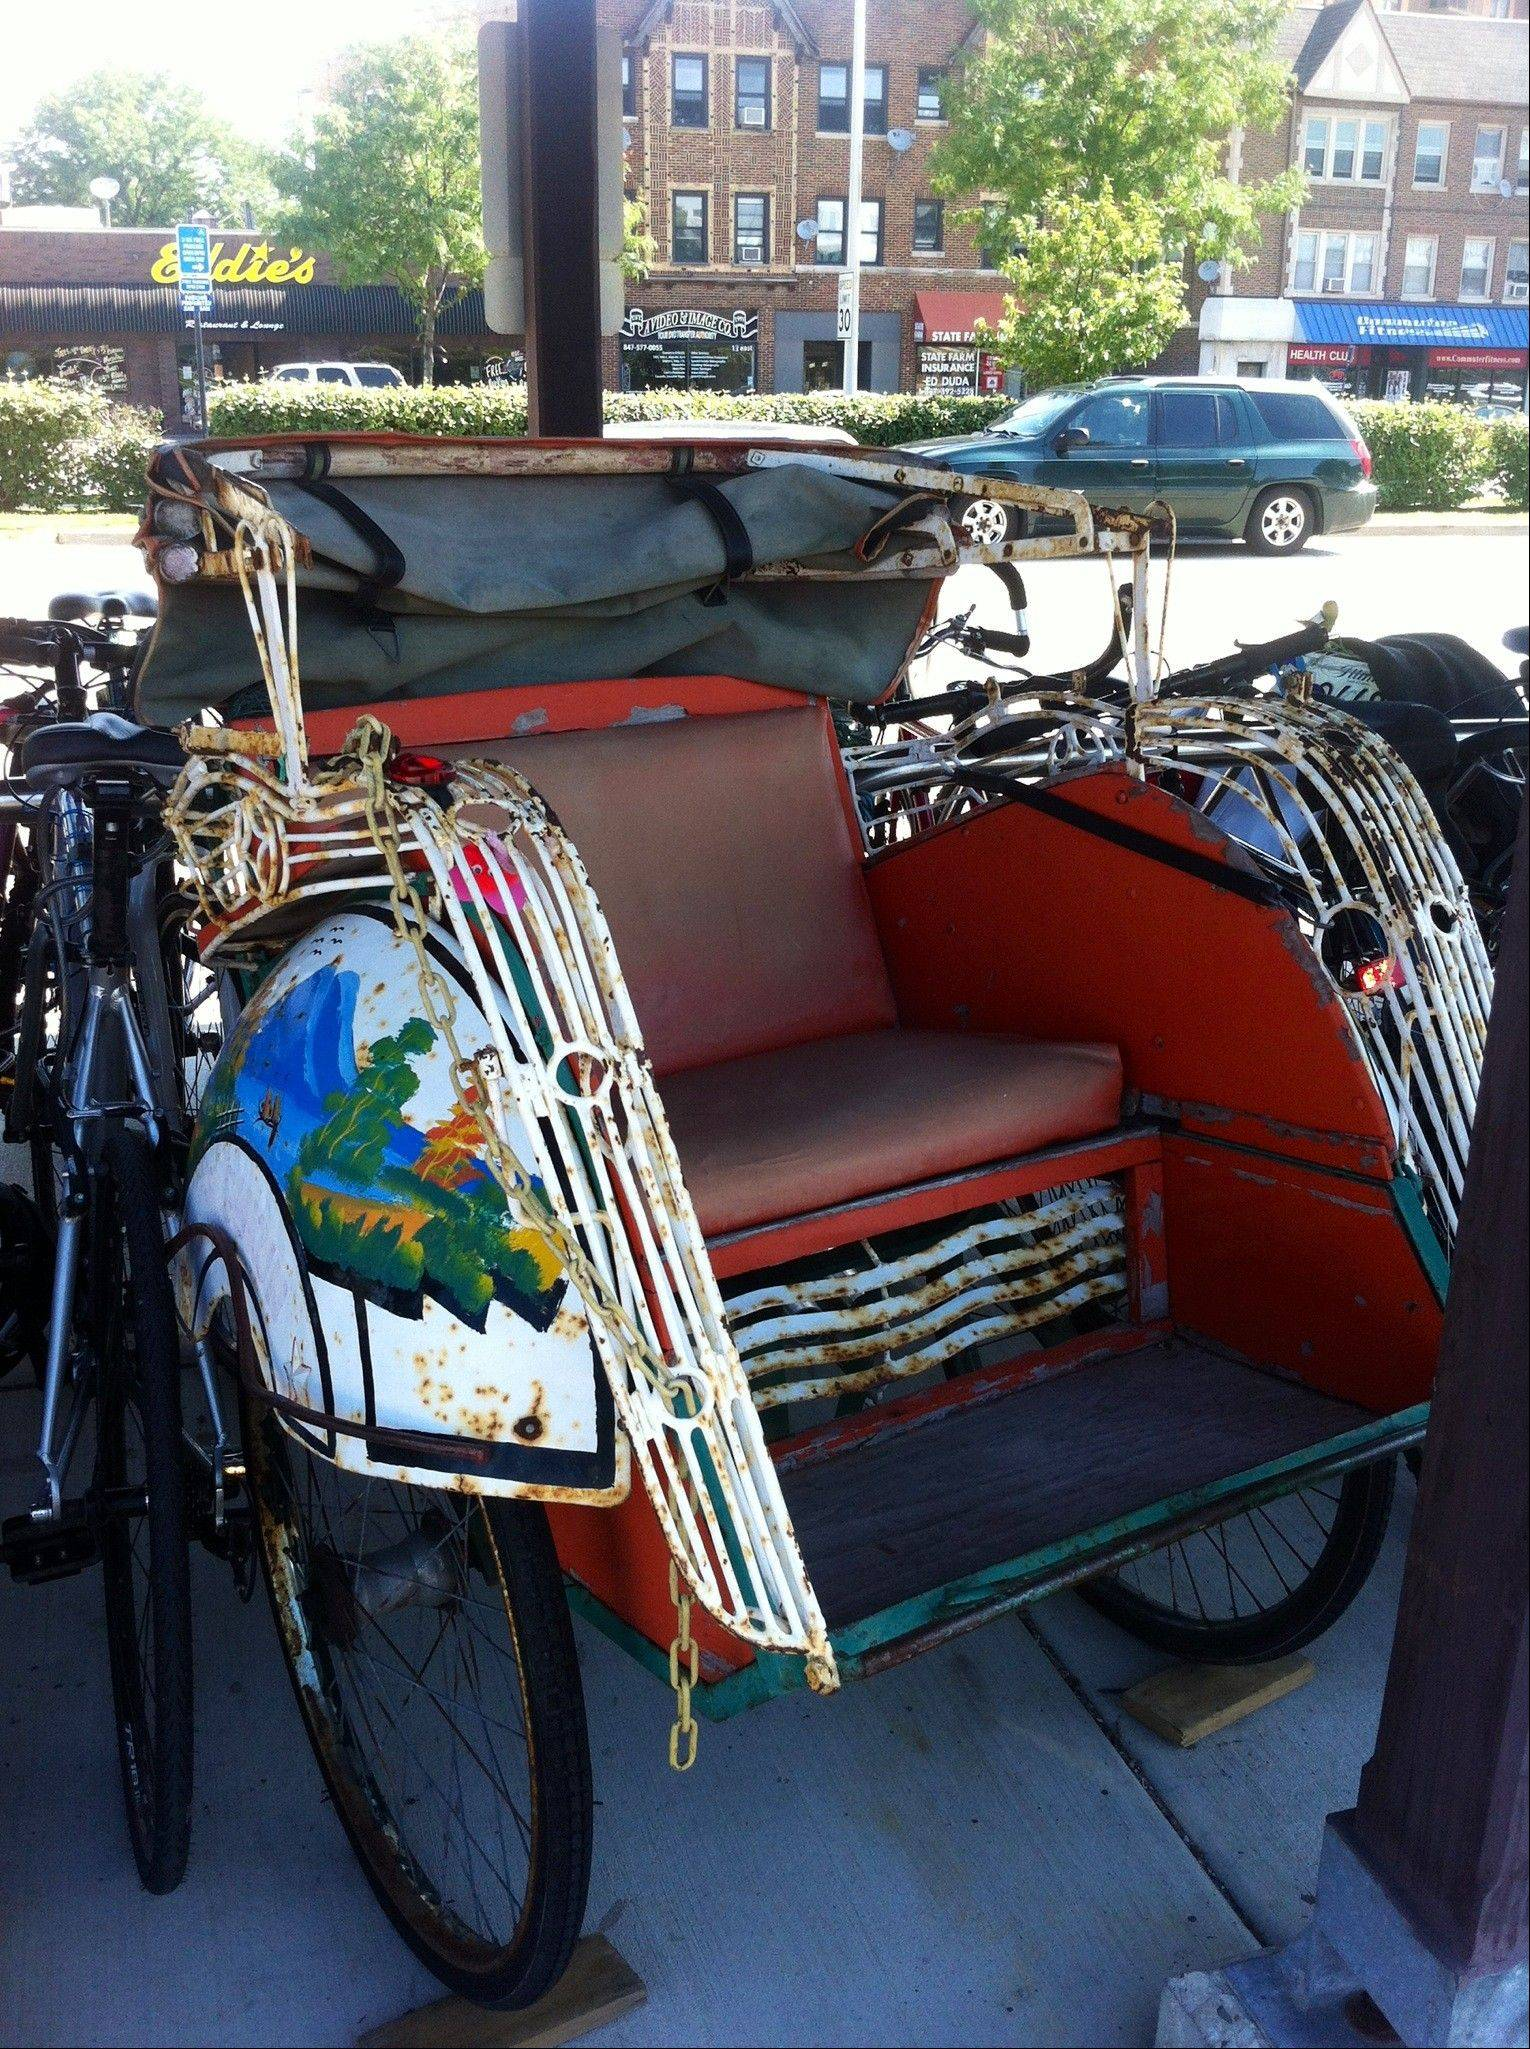 The Hi Guy's rickshaw locked up at the downtown Arlington Heights train station.